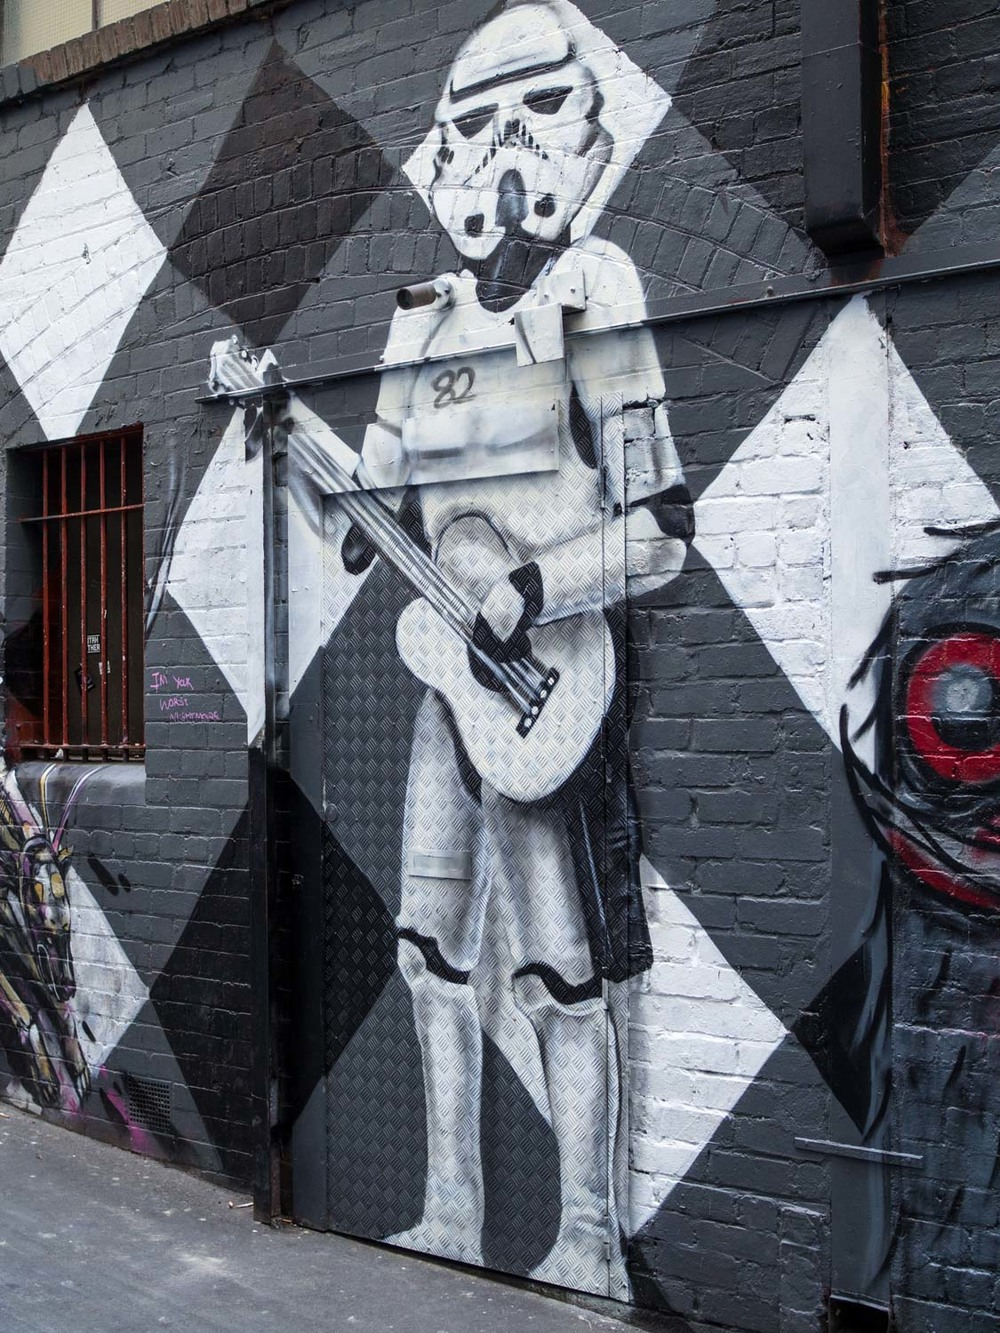 A Stormtrooper guarding AC/DC Lane, Melbourne.